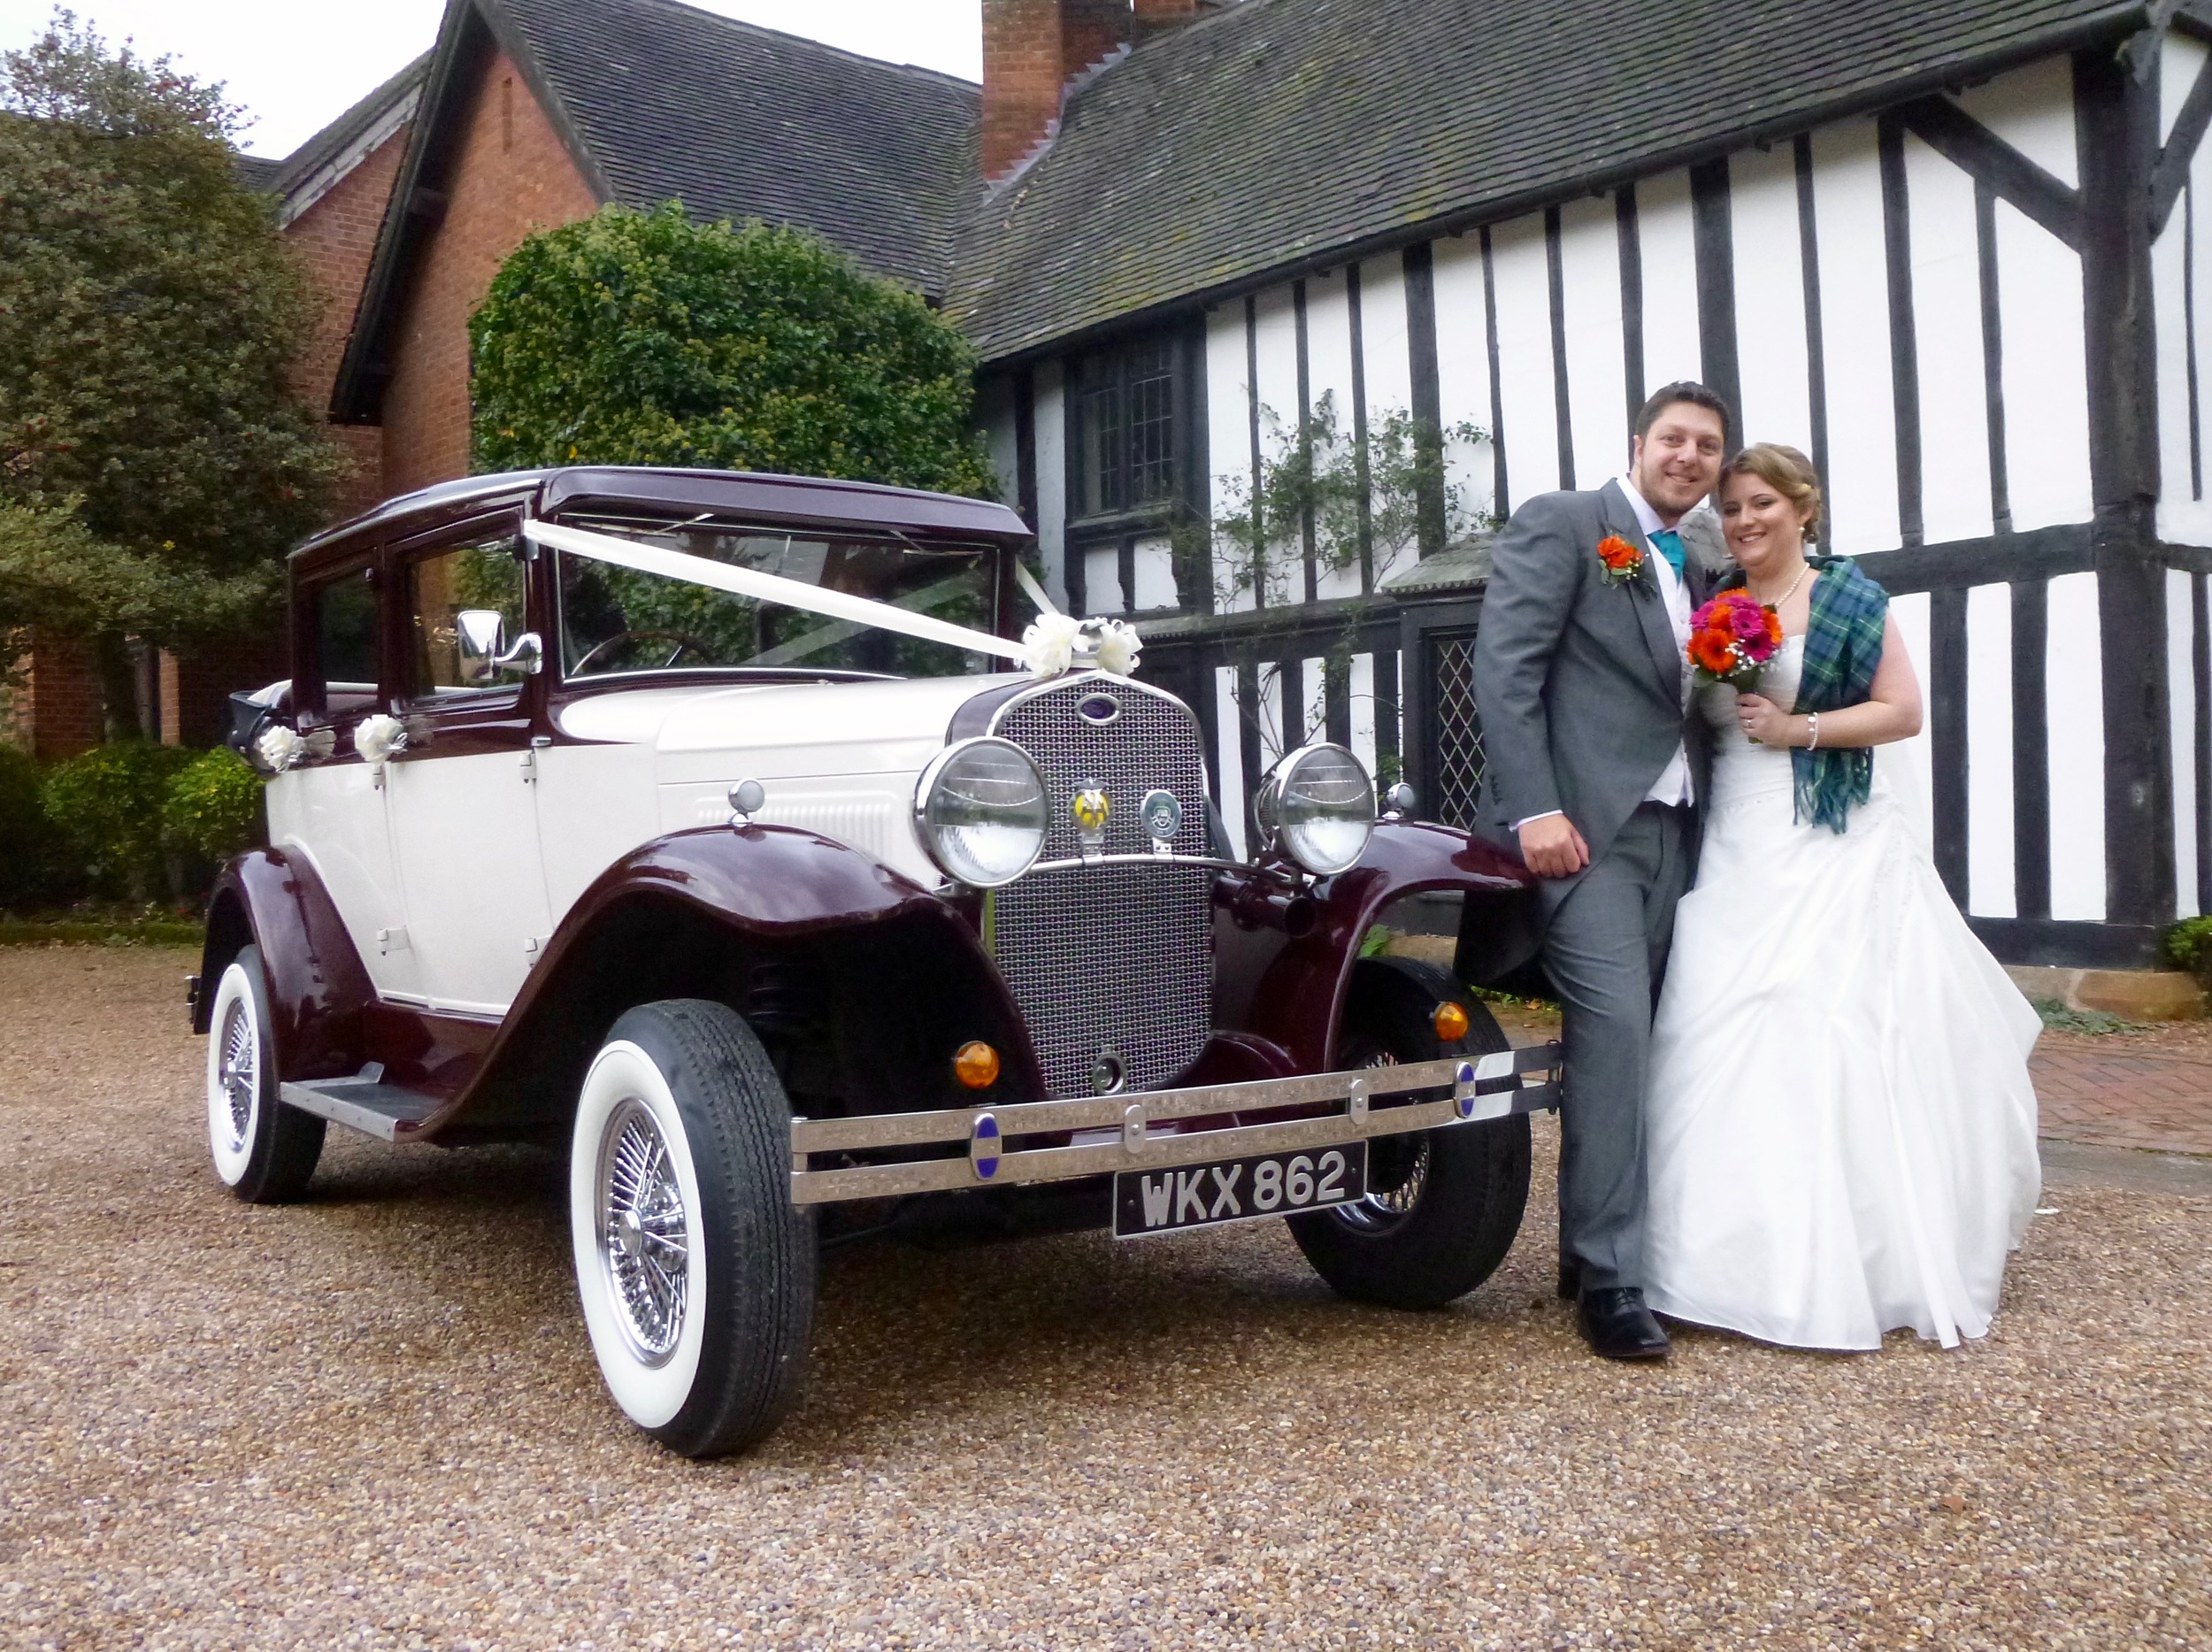 Always a great setting for photos at Nailcote Hall. Our best wishes to the couple and congratulations to Hannah regarding her excellent organisation and timekeeping. Spot on!